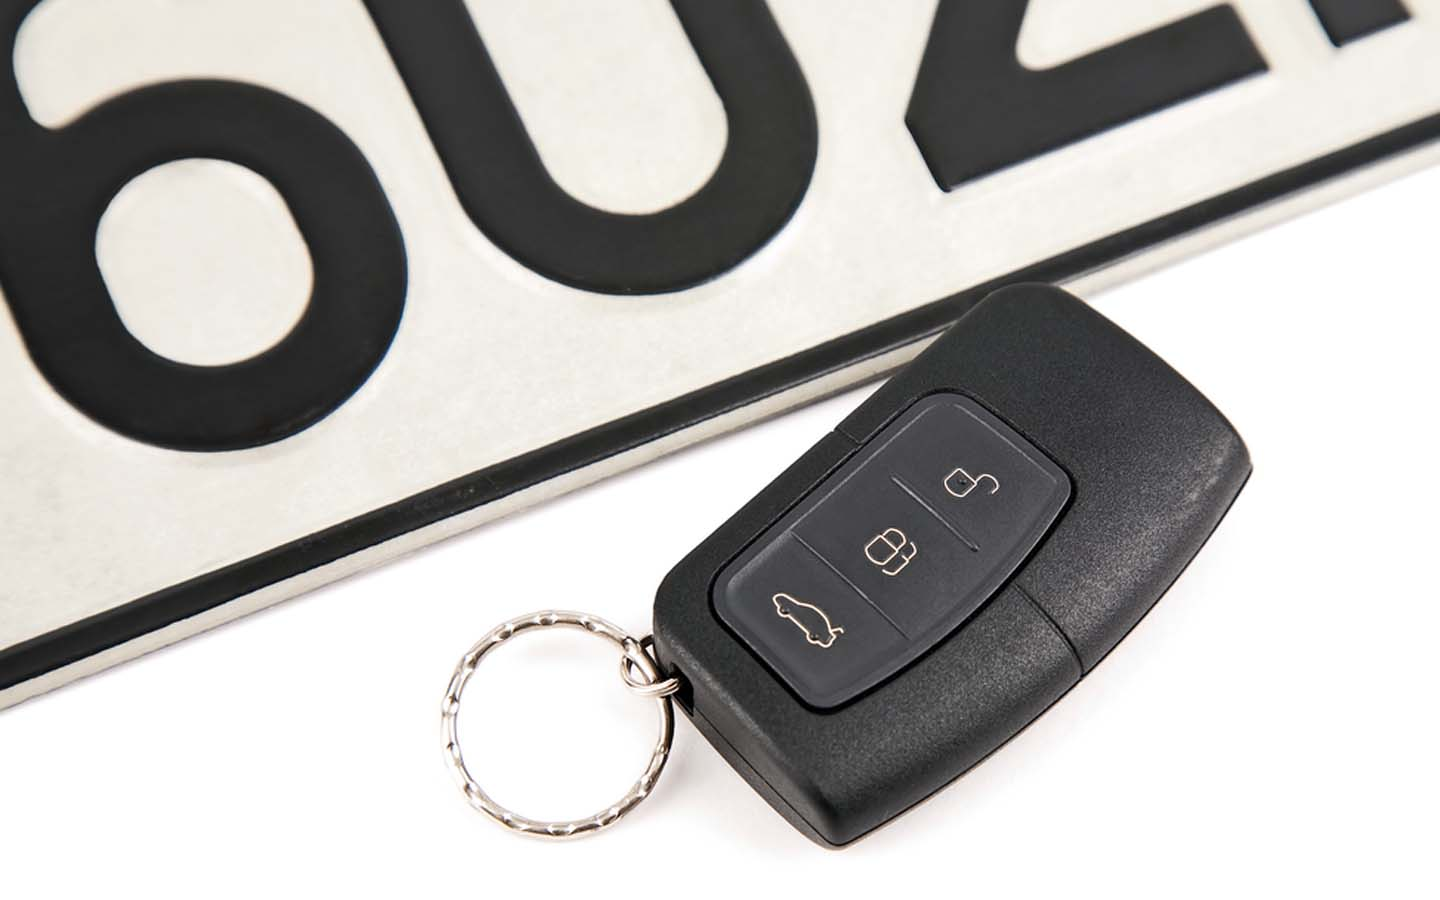 Car remote and plate